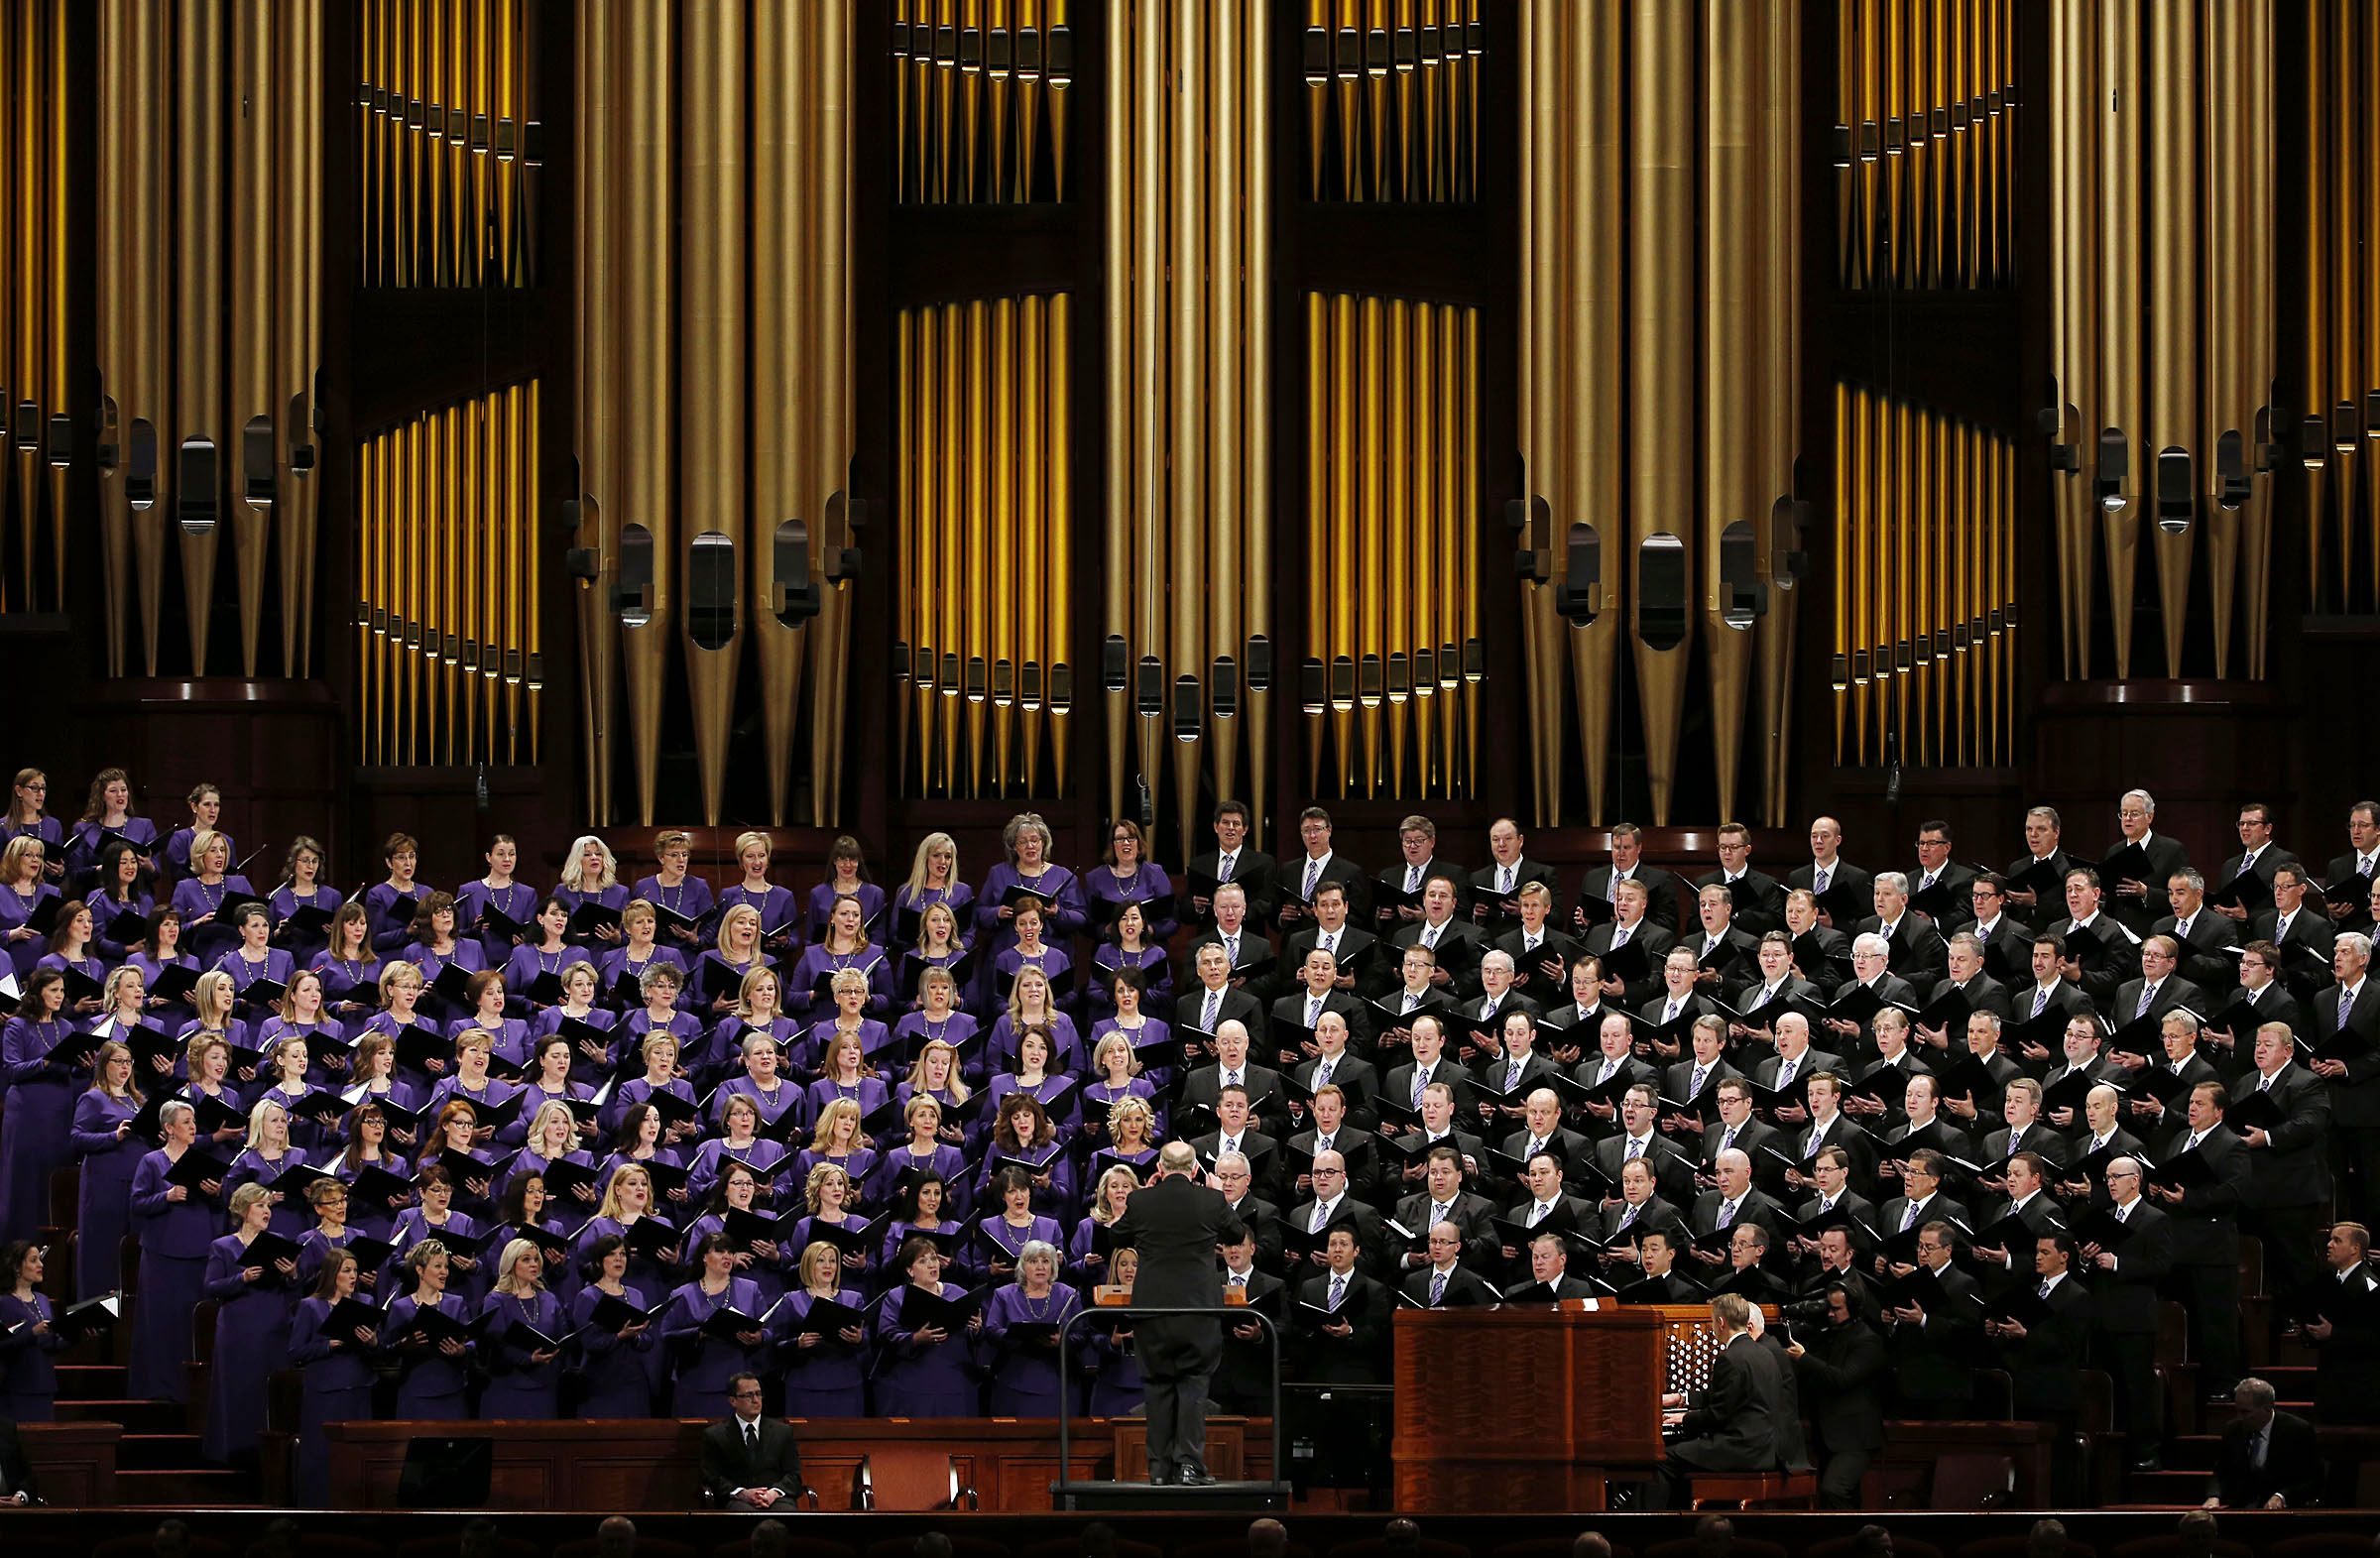 The Tabernacle Choir sings during Church President Thomas S. Monson's funeral at the Conference Center in Salt Lake City on Friday, Jan. 12, 2018.